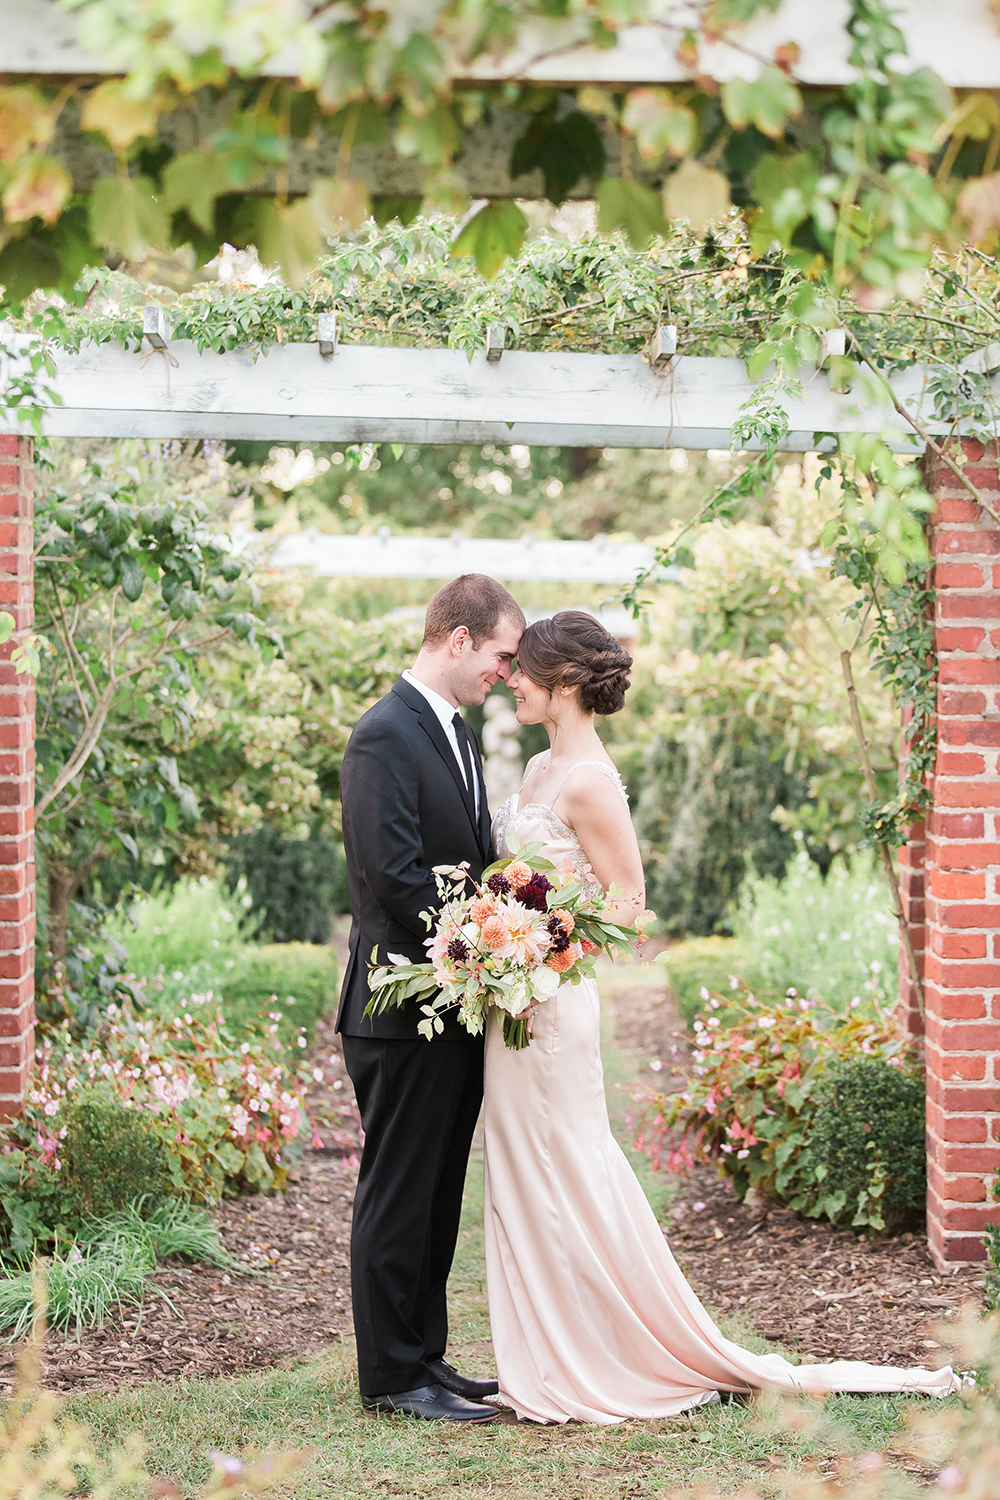 garden weddings - photo by Candice Adelle Photography http://ruffledblog.com/historic-garden-wedding-inspiration